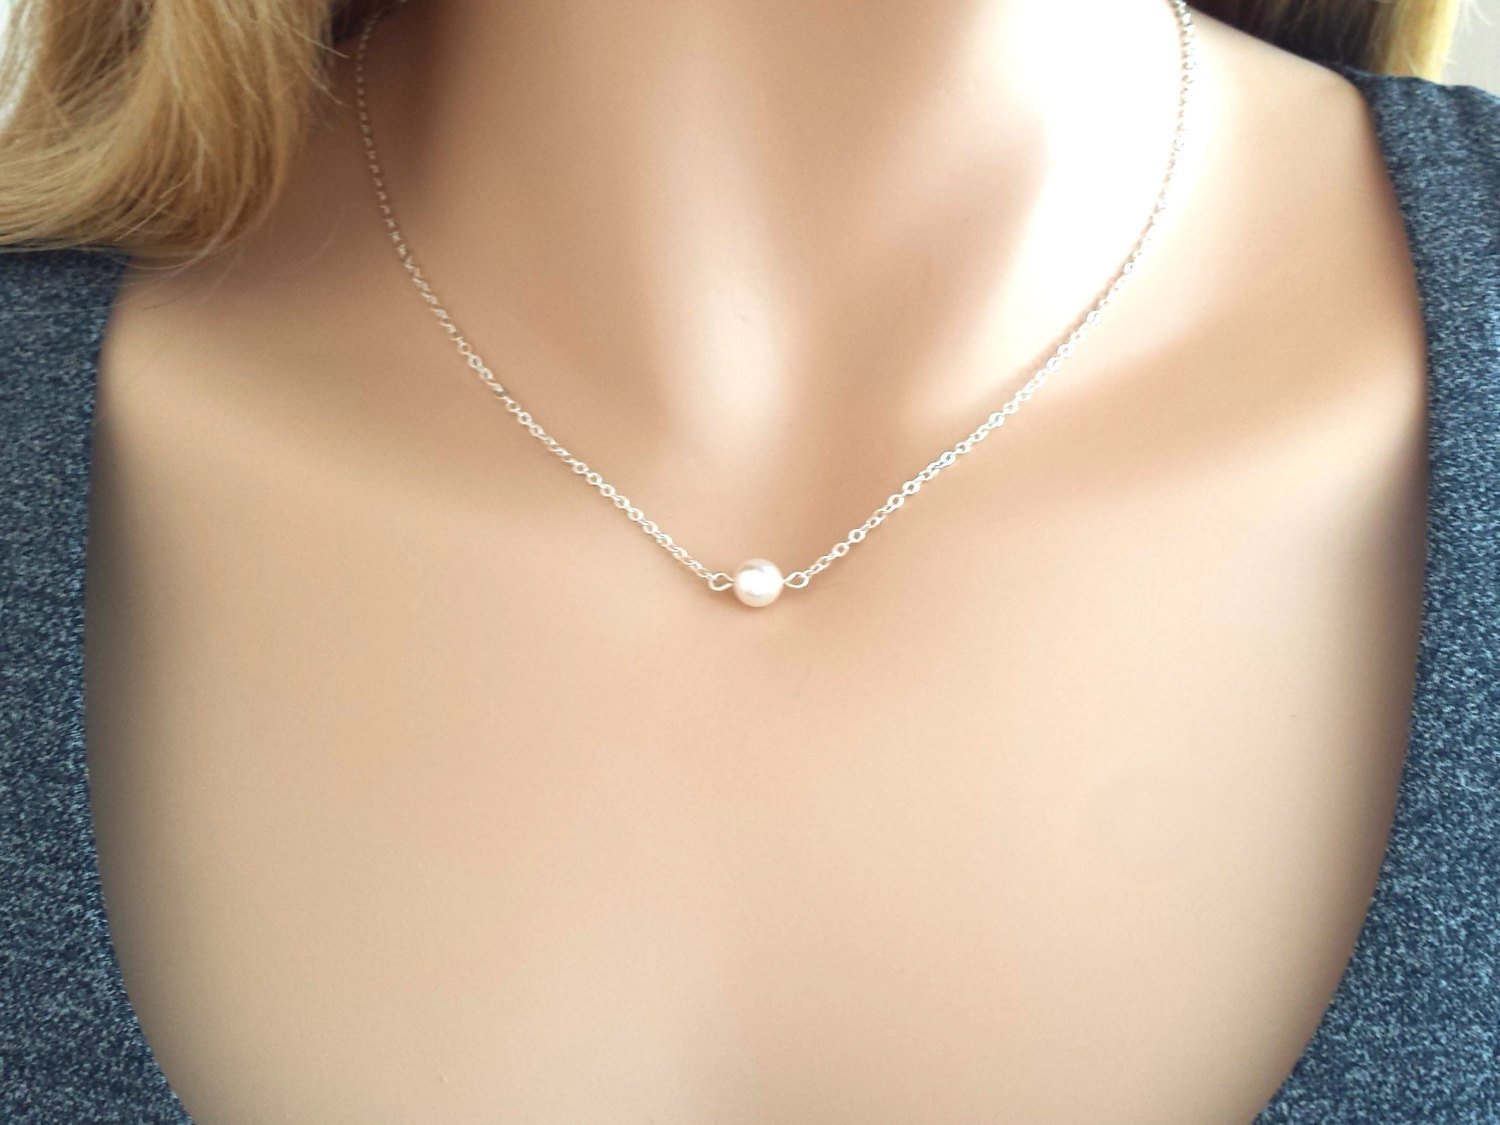 Freshwater Pearl Ball Tiny Sterling Silver Choker Necklace Dainty Everyday Short Simple Jewelry